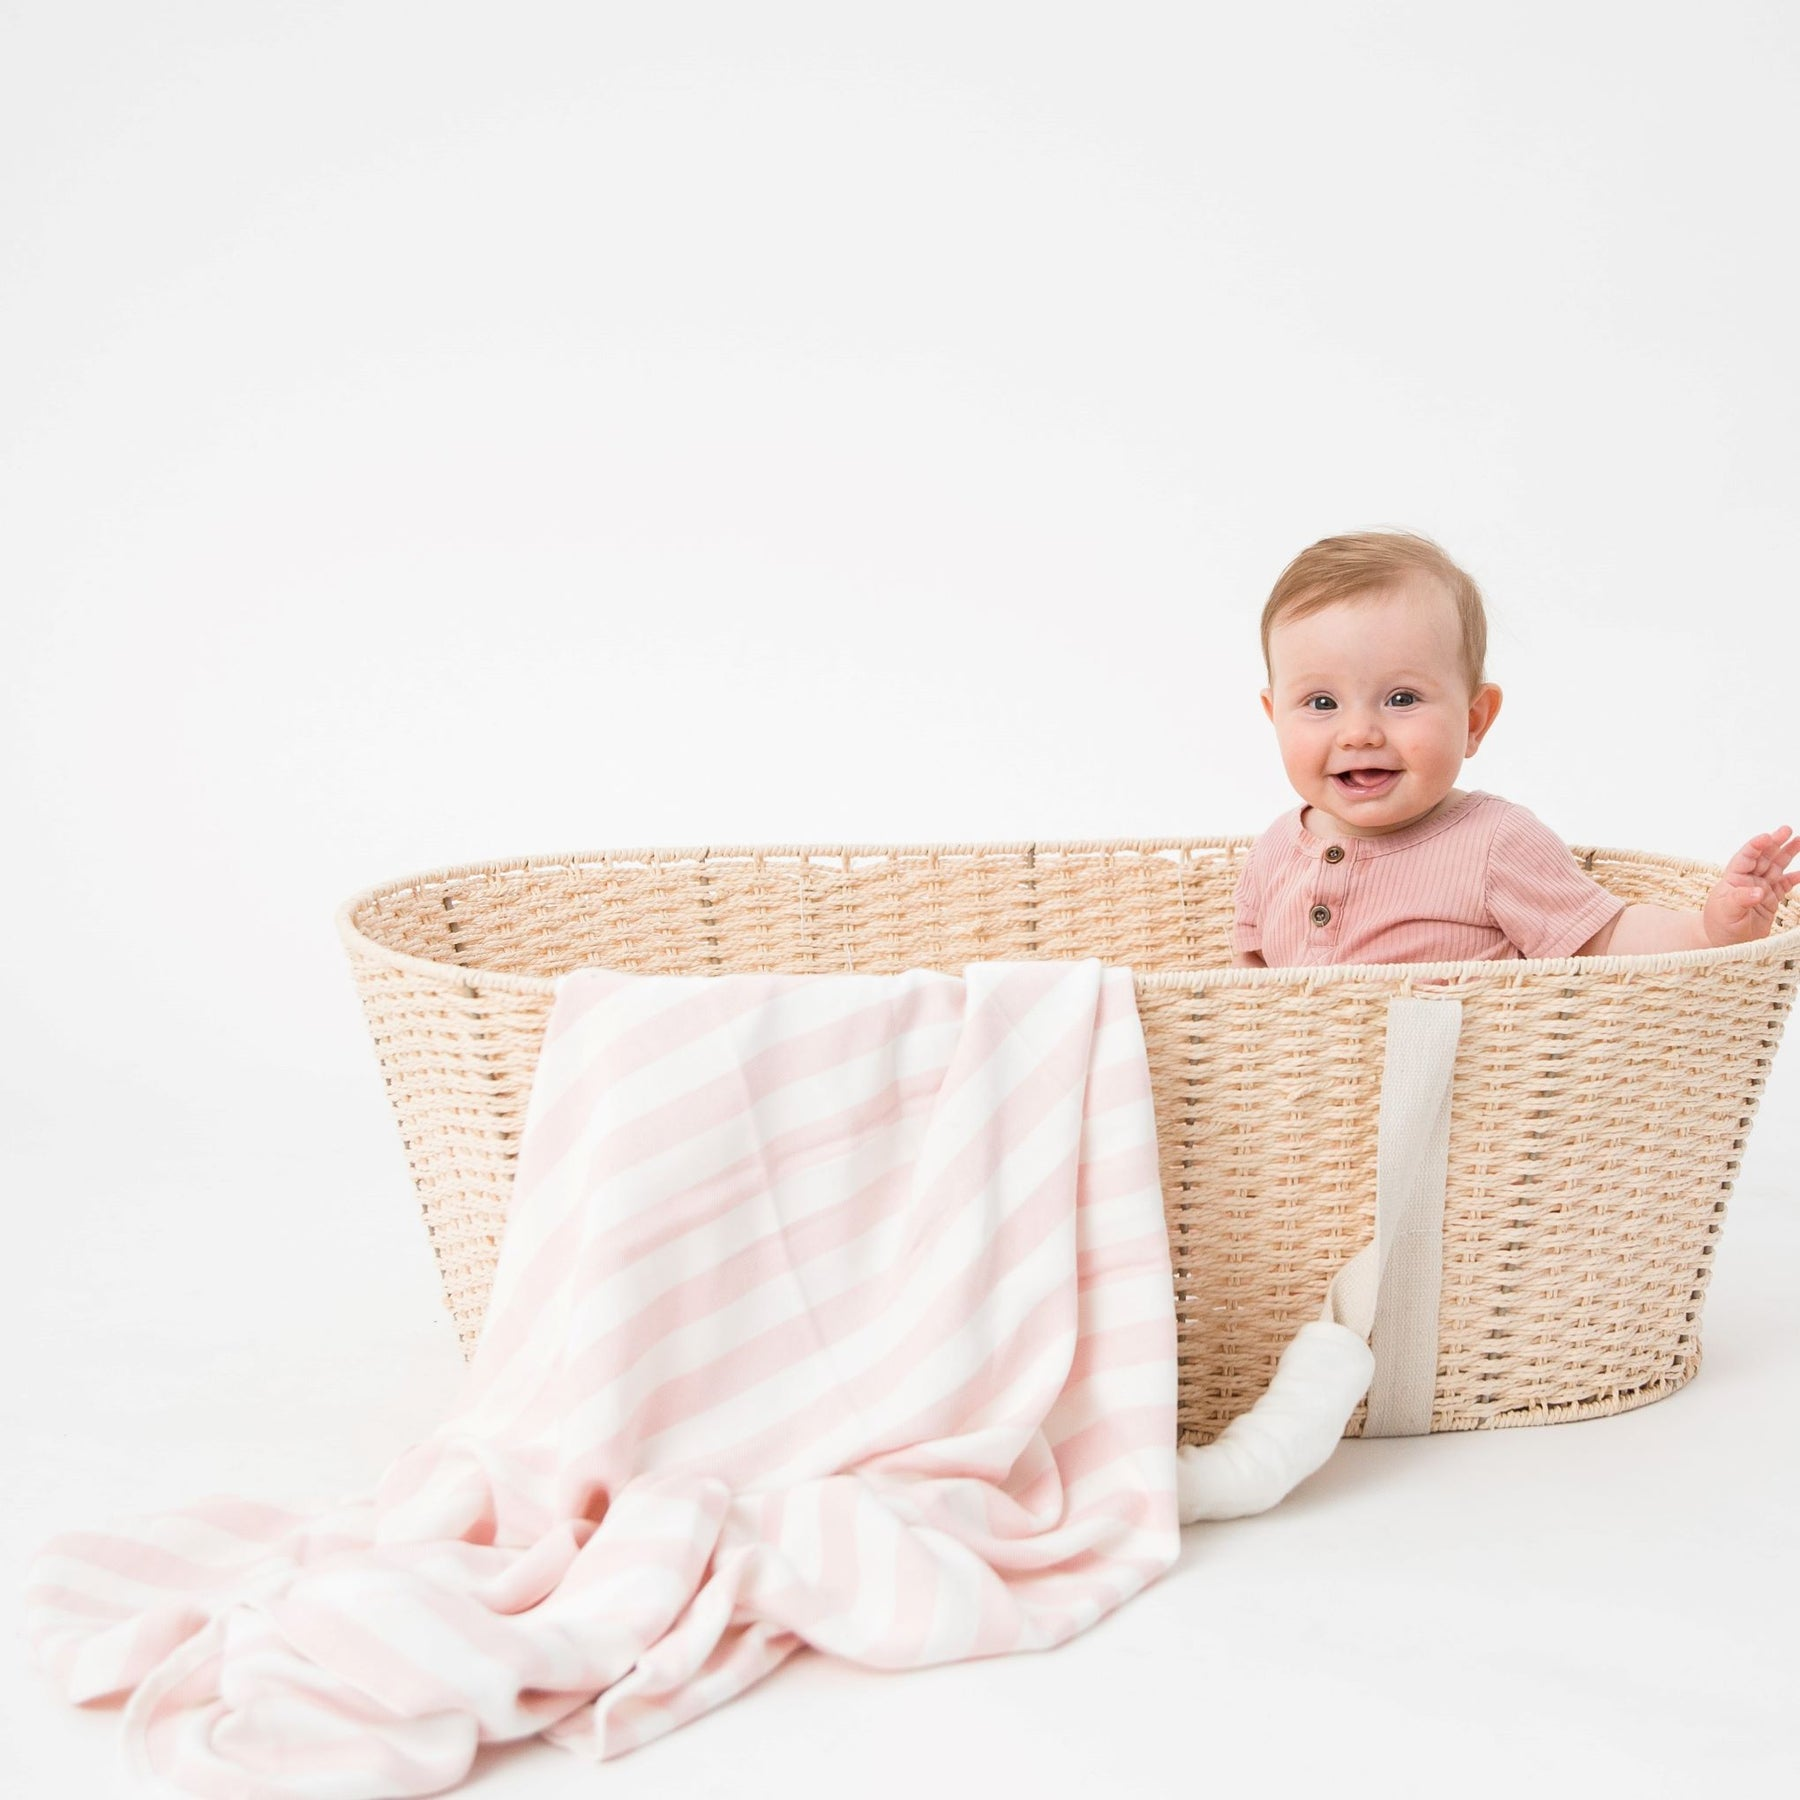 100% bamboo baby blanket, perfect for a baby shower present.  These 100% bamboo baby blankets are perfect for babies sensitive and delicate skin.  Love & Lee